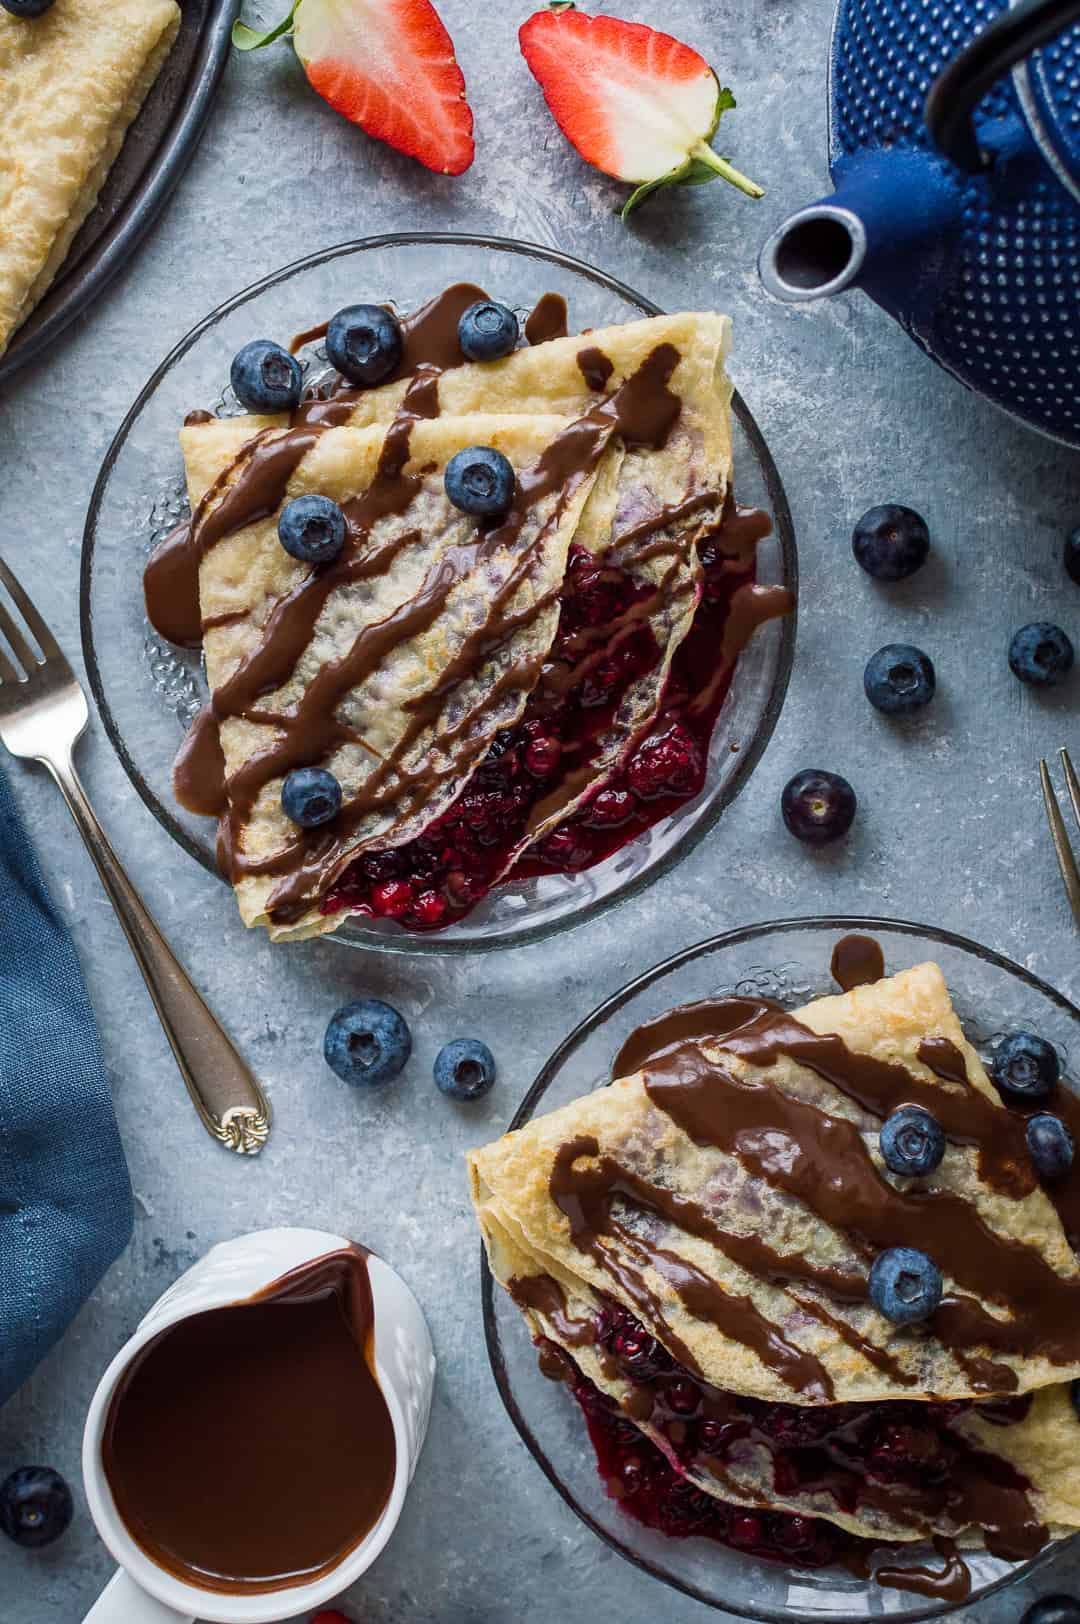 Two glass plates of pancakes filled with berry compote and drizzled with chocolate sauce and blueberries.